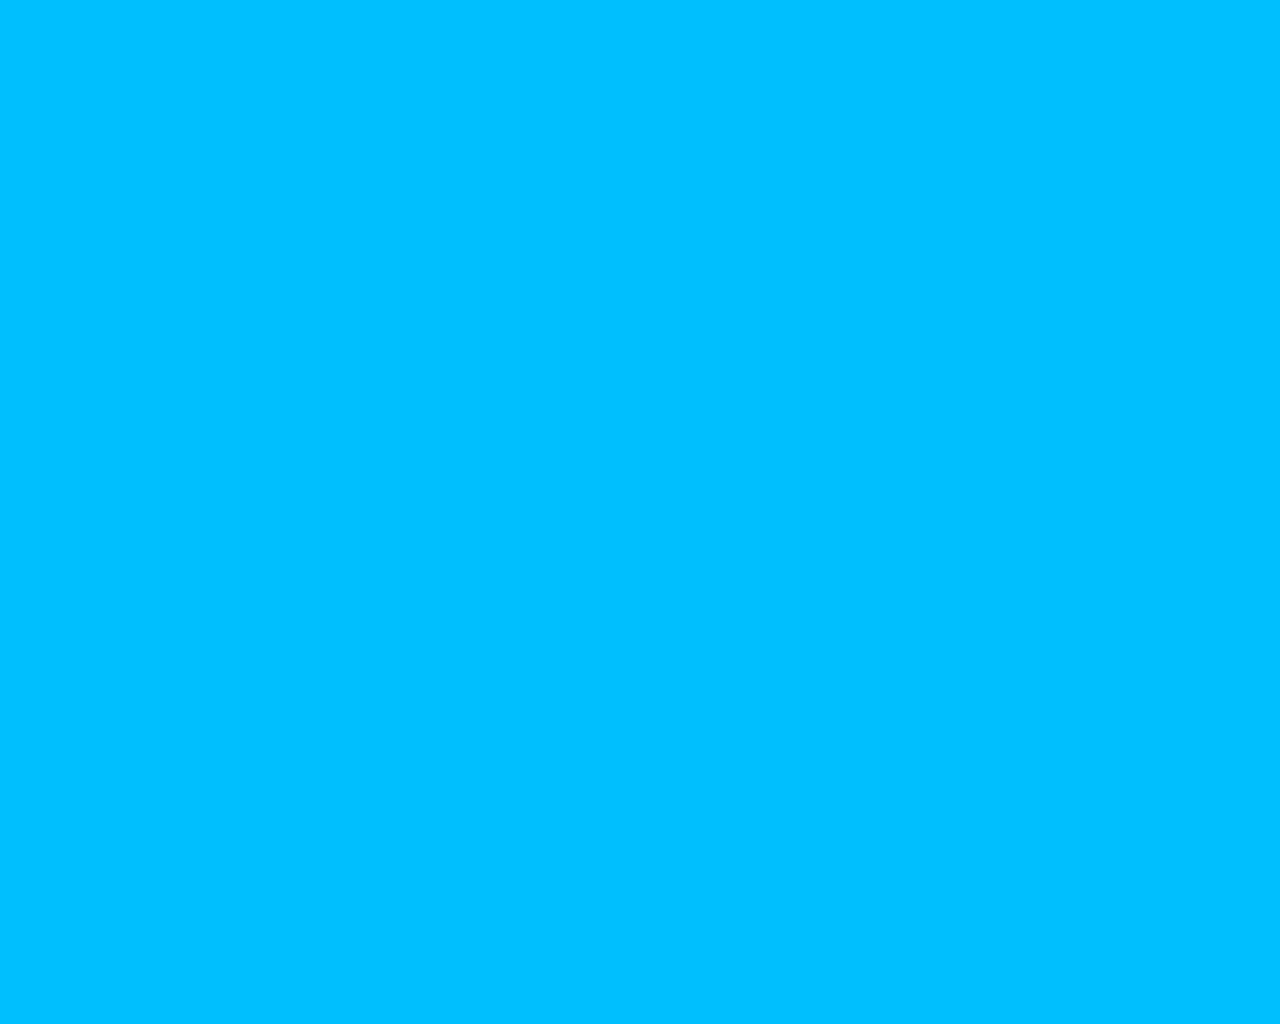 Blue Color Background Wallpaper Images Pictures   Becuo 1280x1024